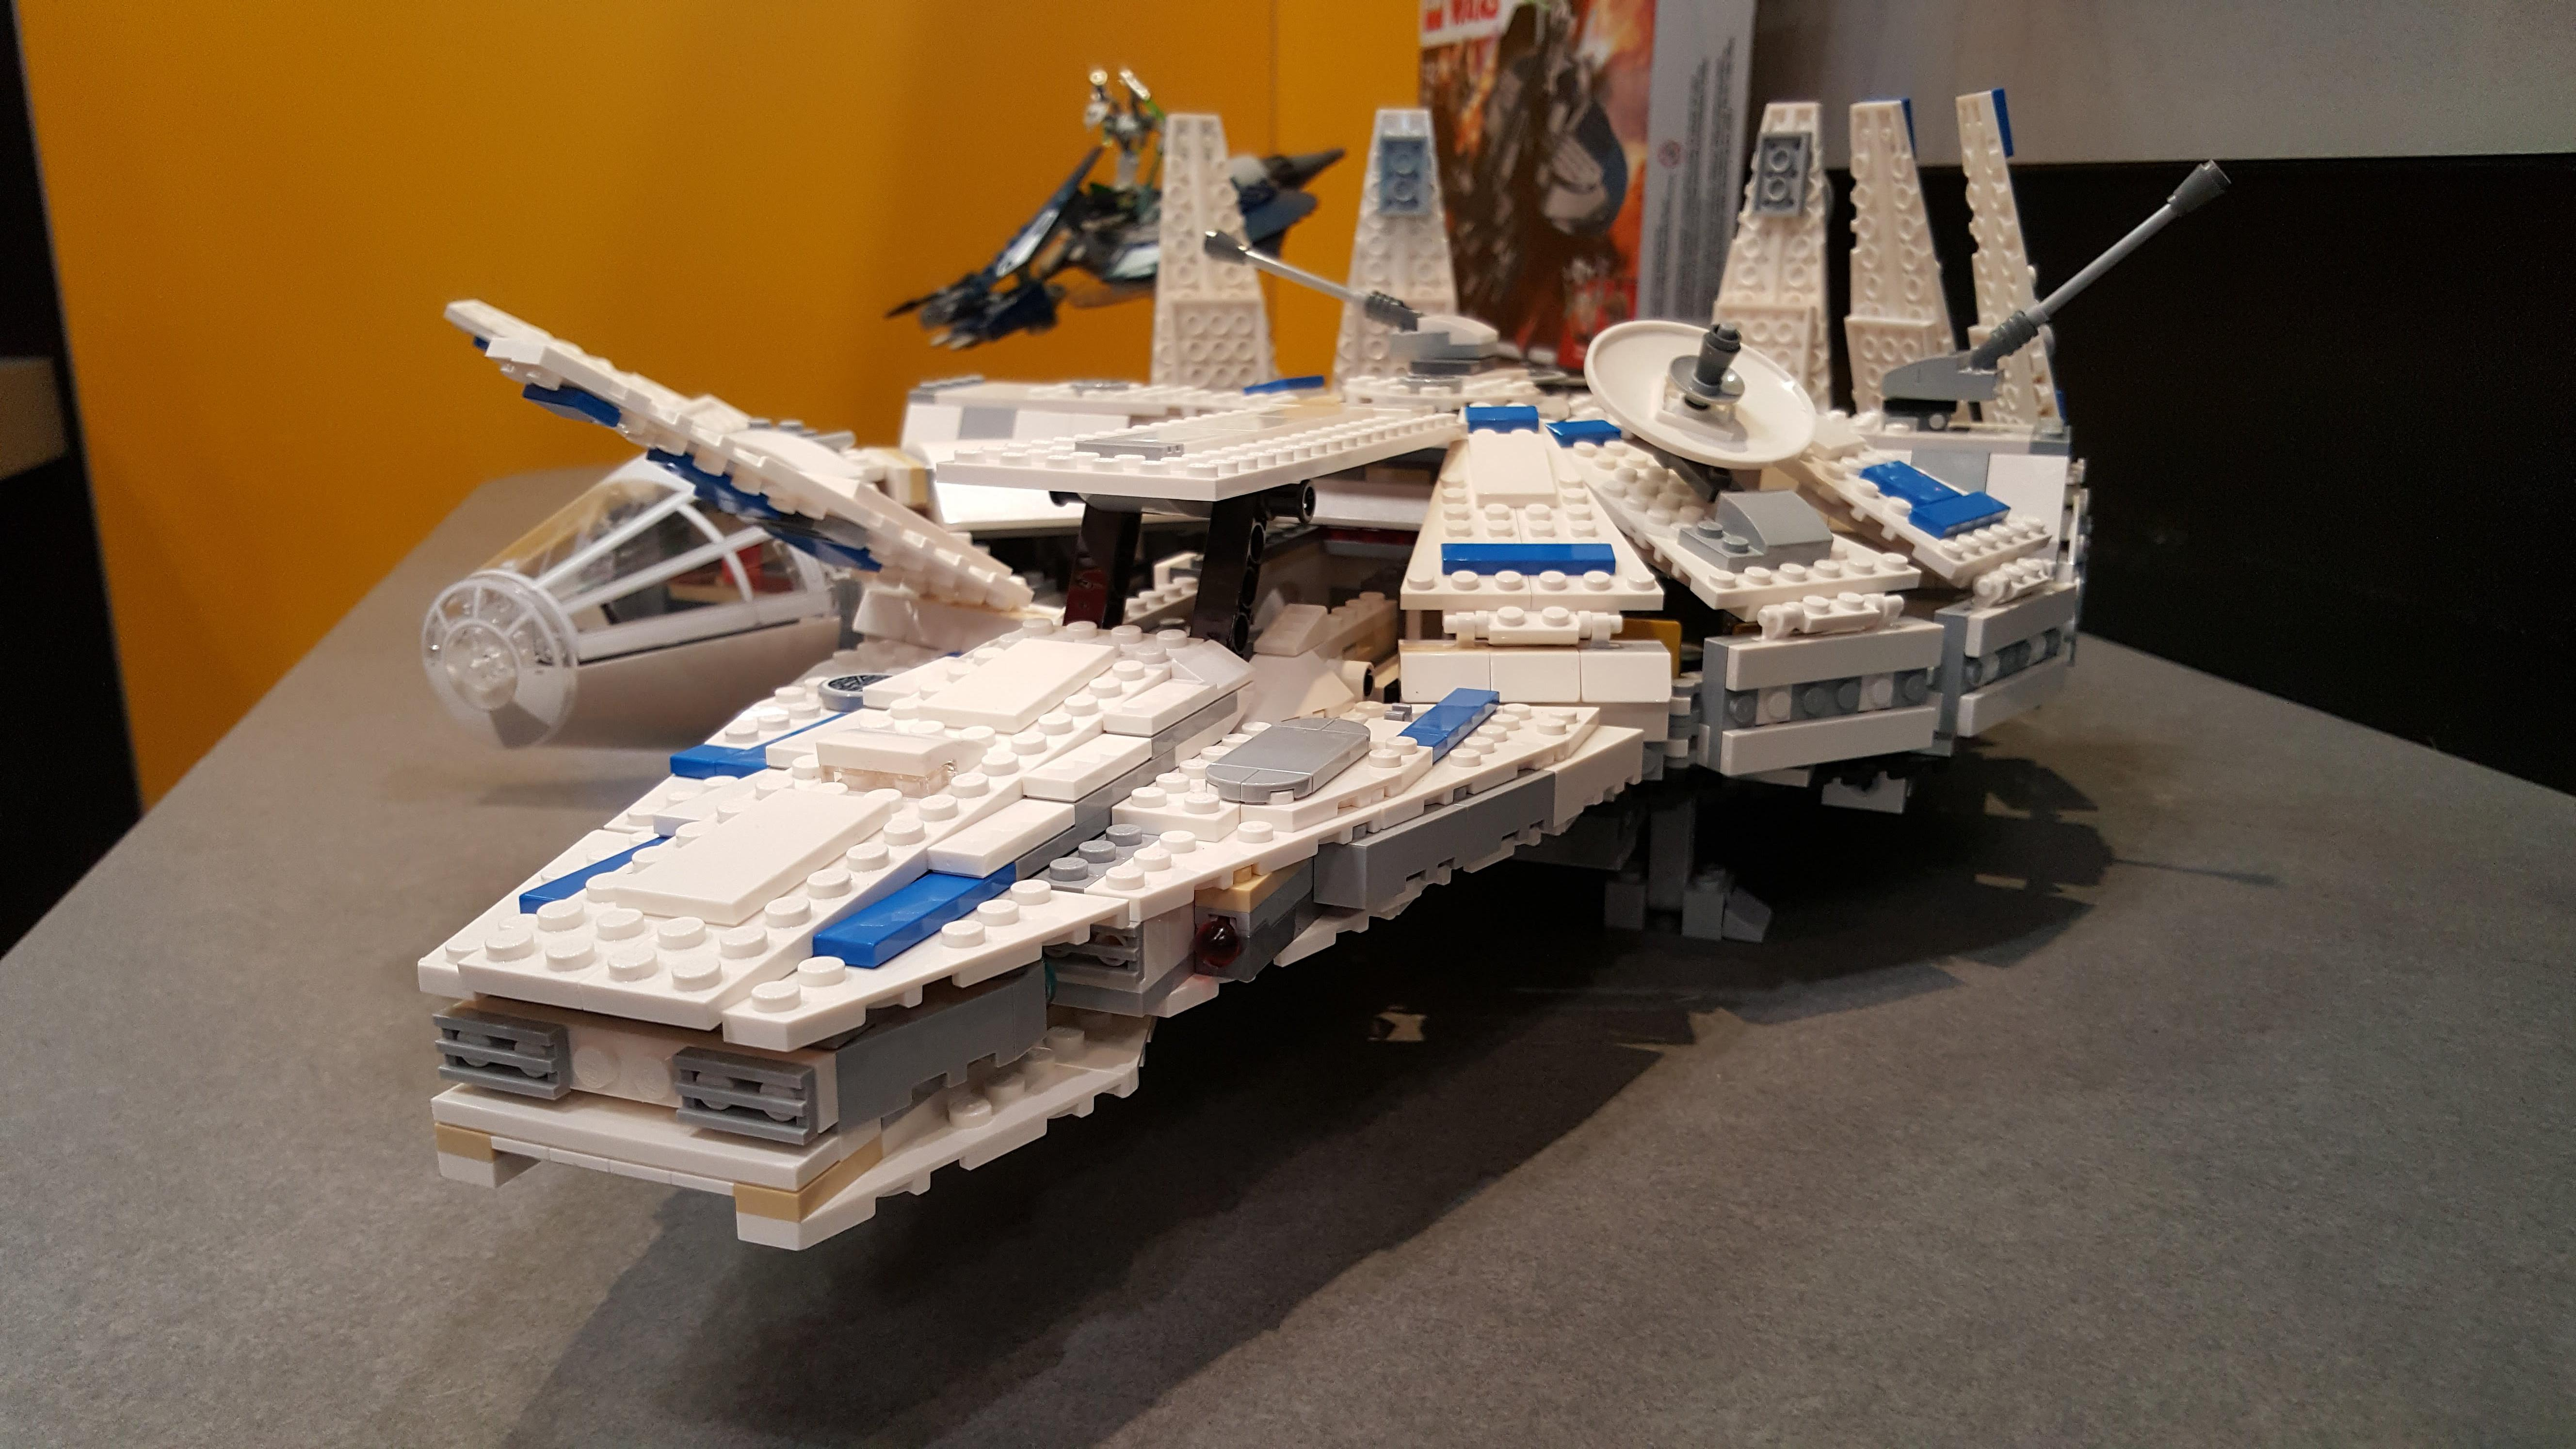 lego-millennium-falcon-kessel-run-solo-star-wars-toy-fair-mike-sorrentino-cnet-4